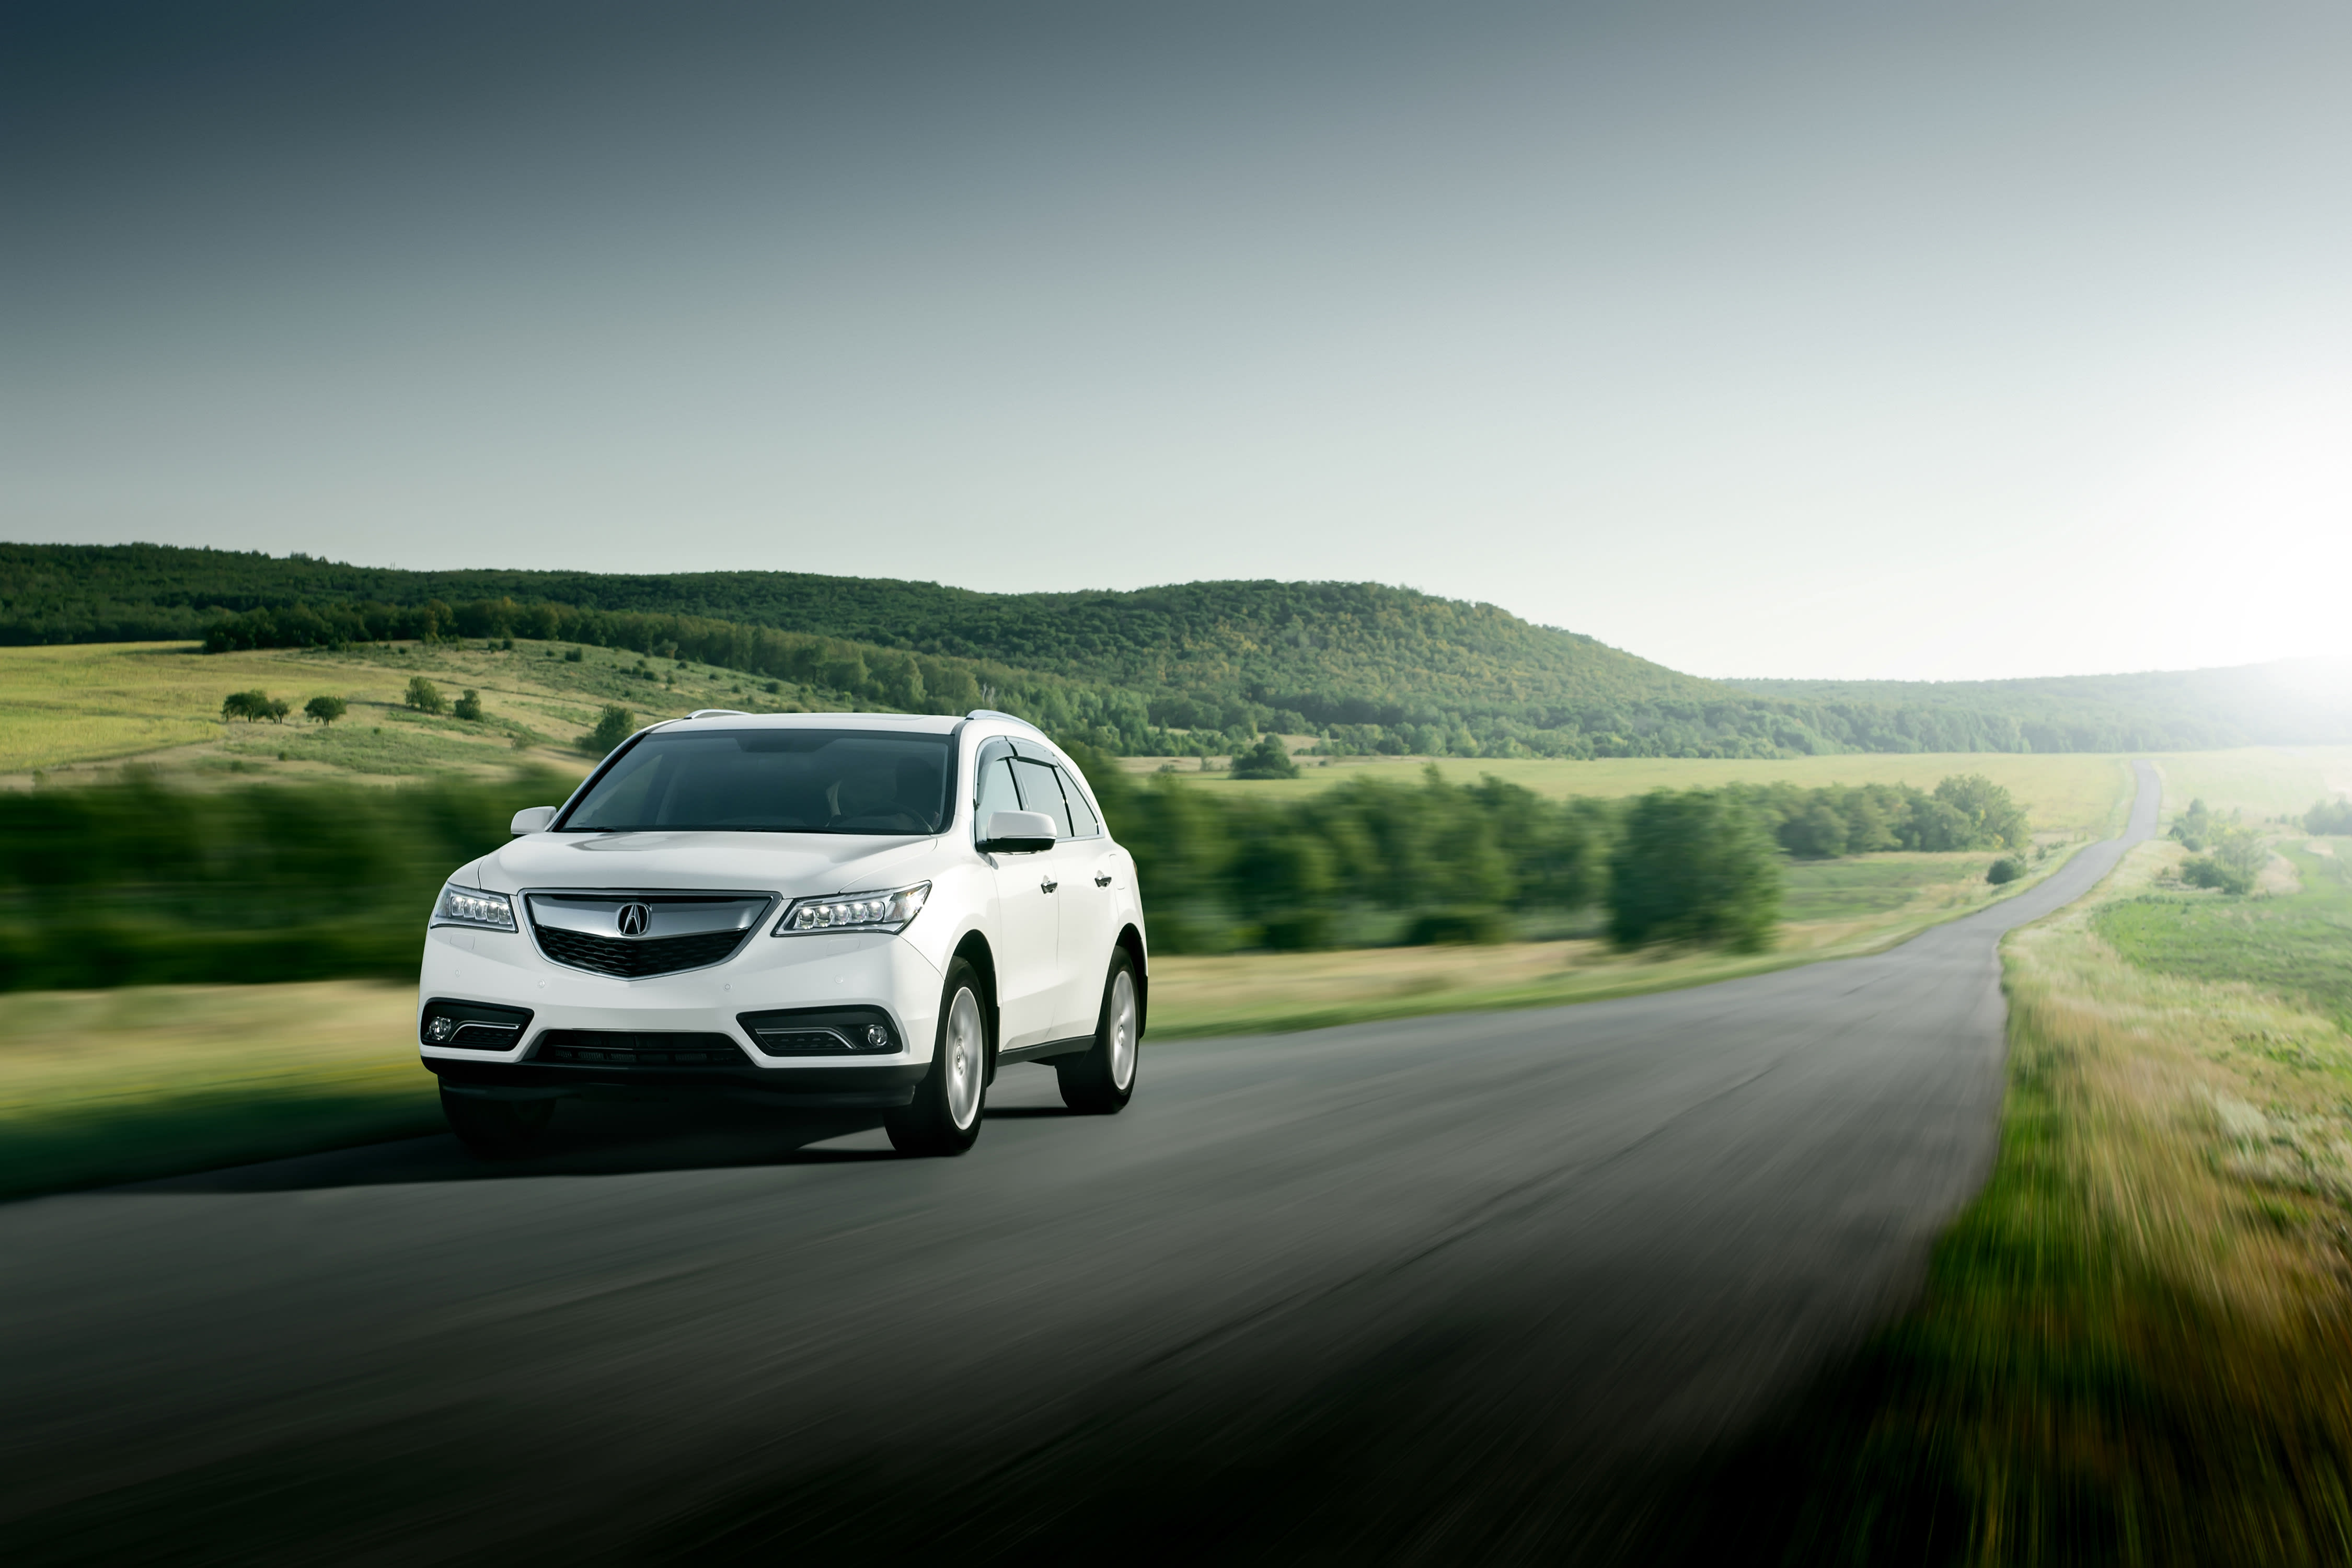 Honda Recalls 2014-2019 Acura MDX and MDX Sport Hybrid Vehicles For Taillight Issues